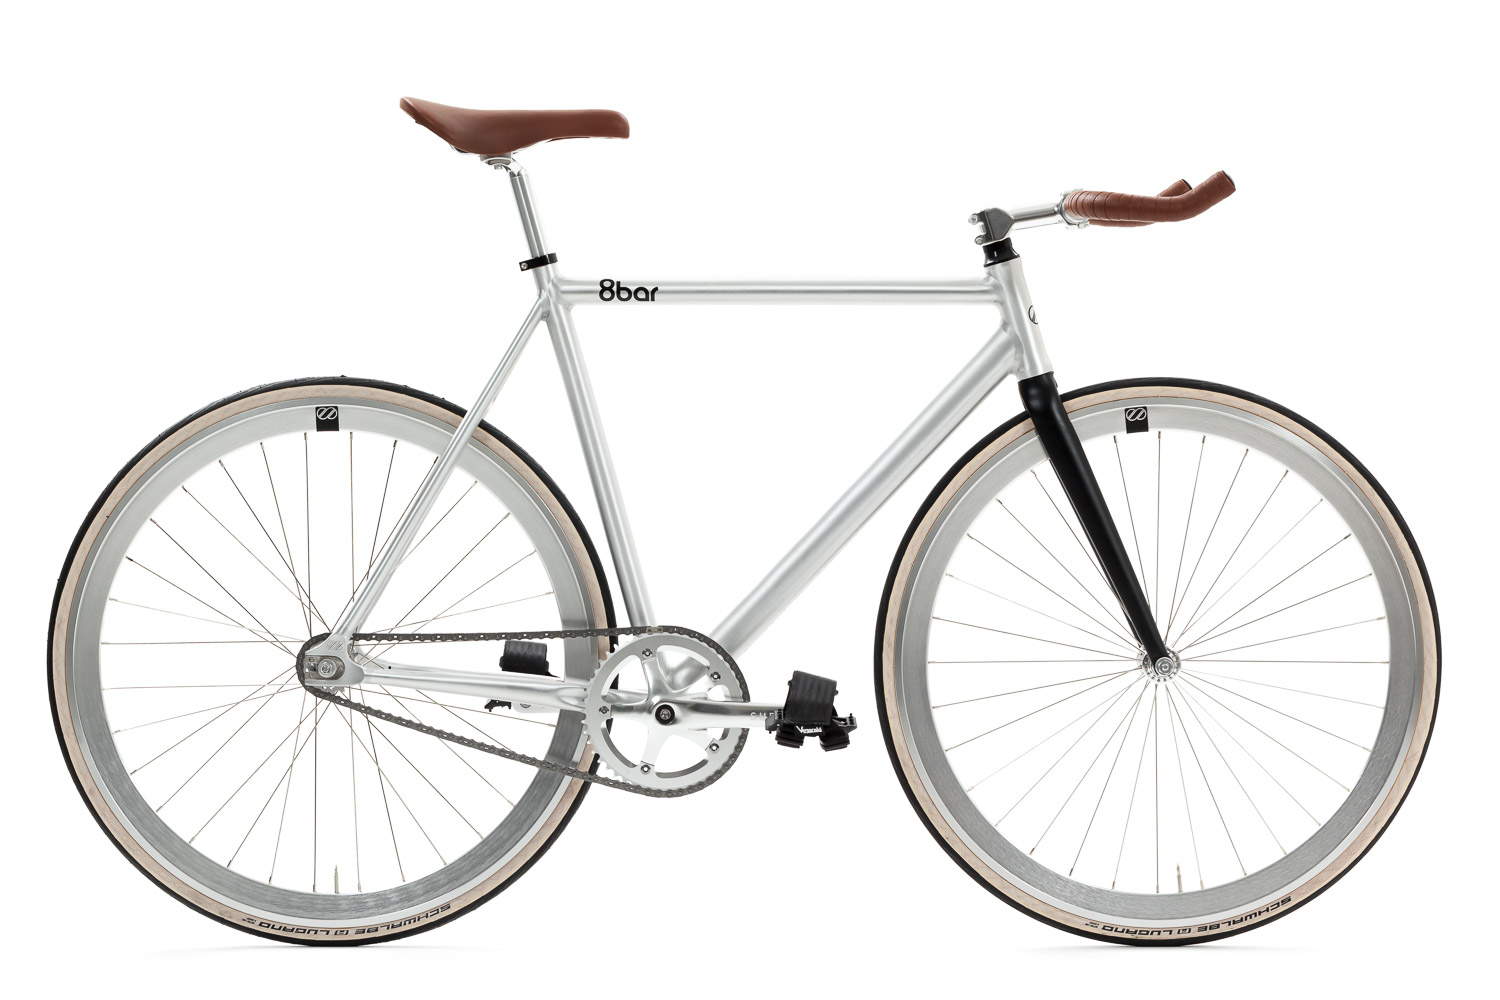 8bar-fhain-comp-raw-bullhorn-fixie-fixed-gear-1